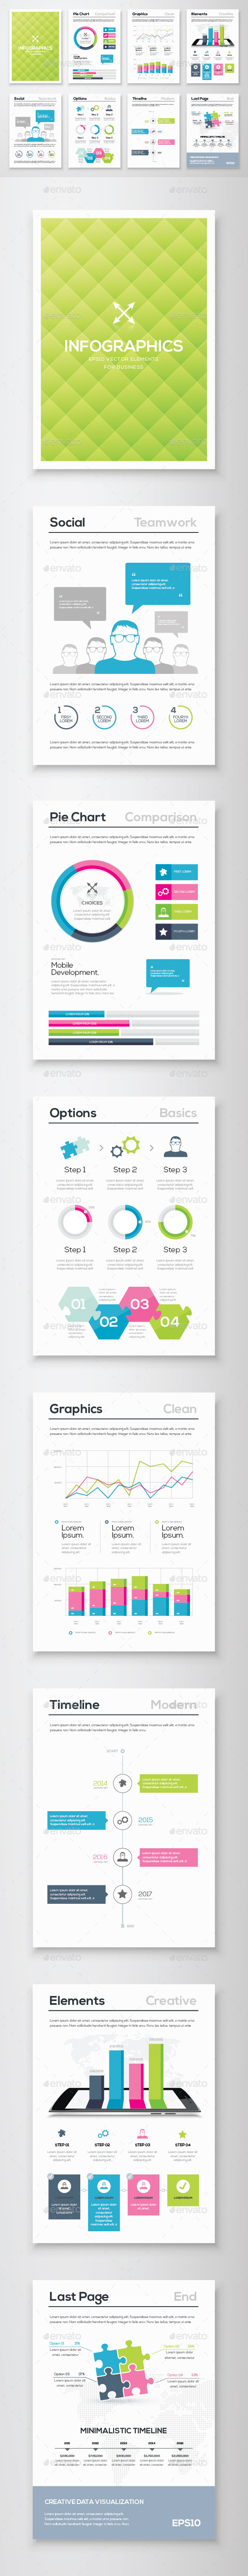 GraphicRiver Infographic Brochure Vector Elements Kit 12 11136997